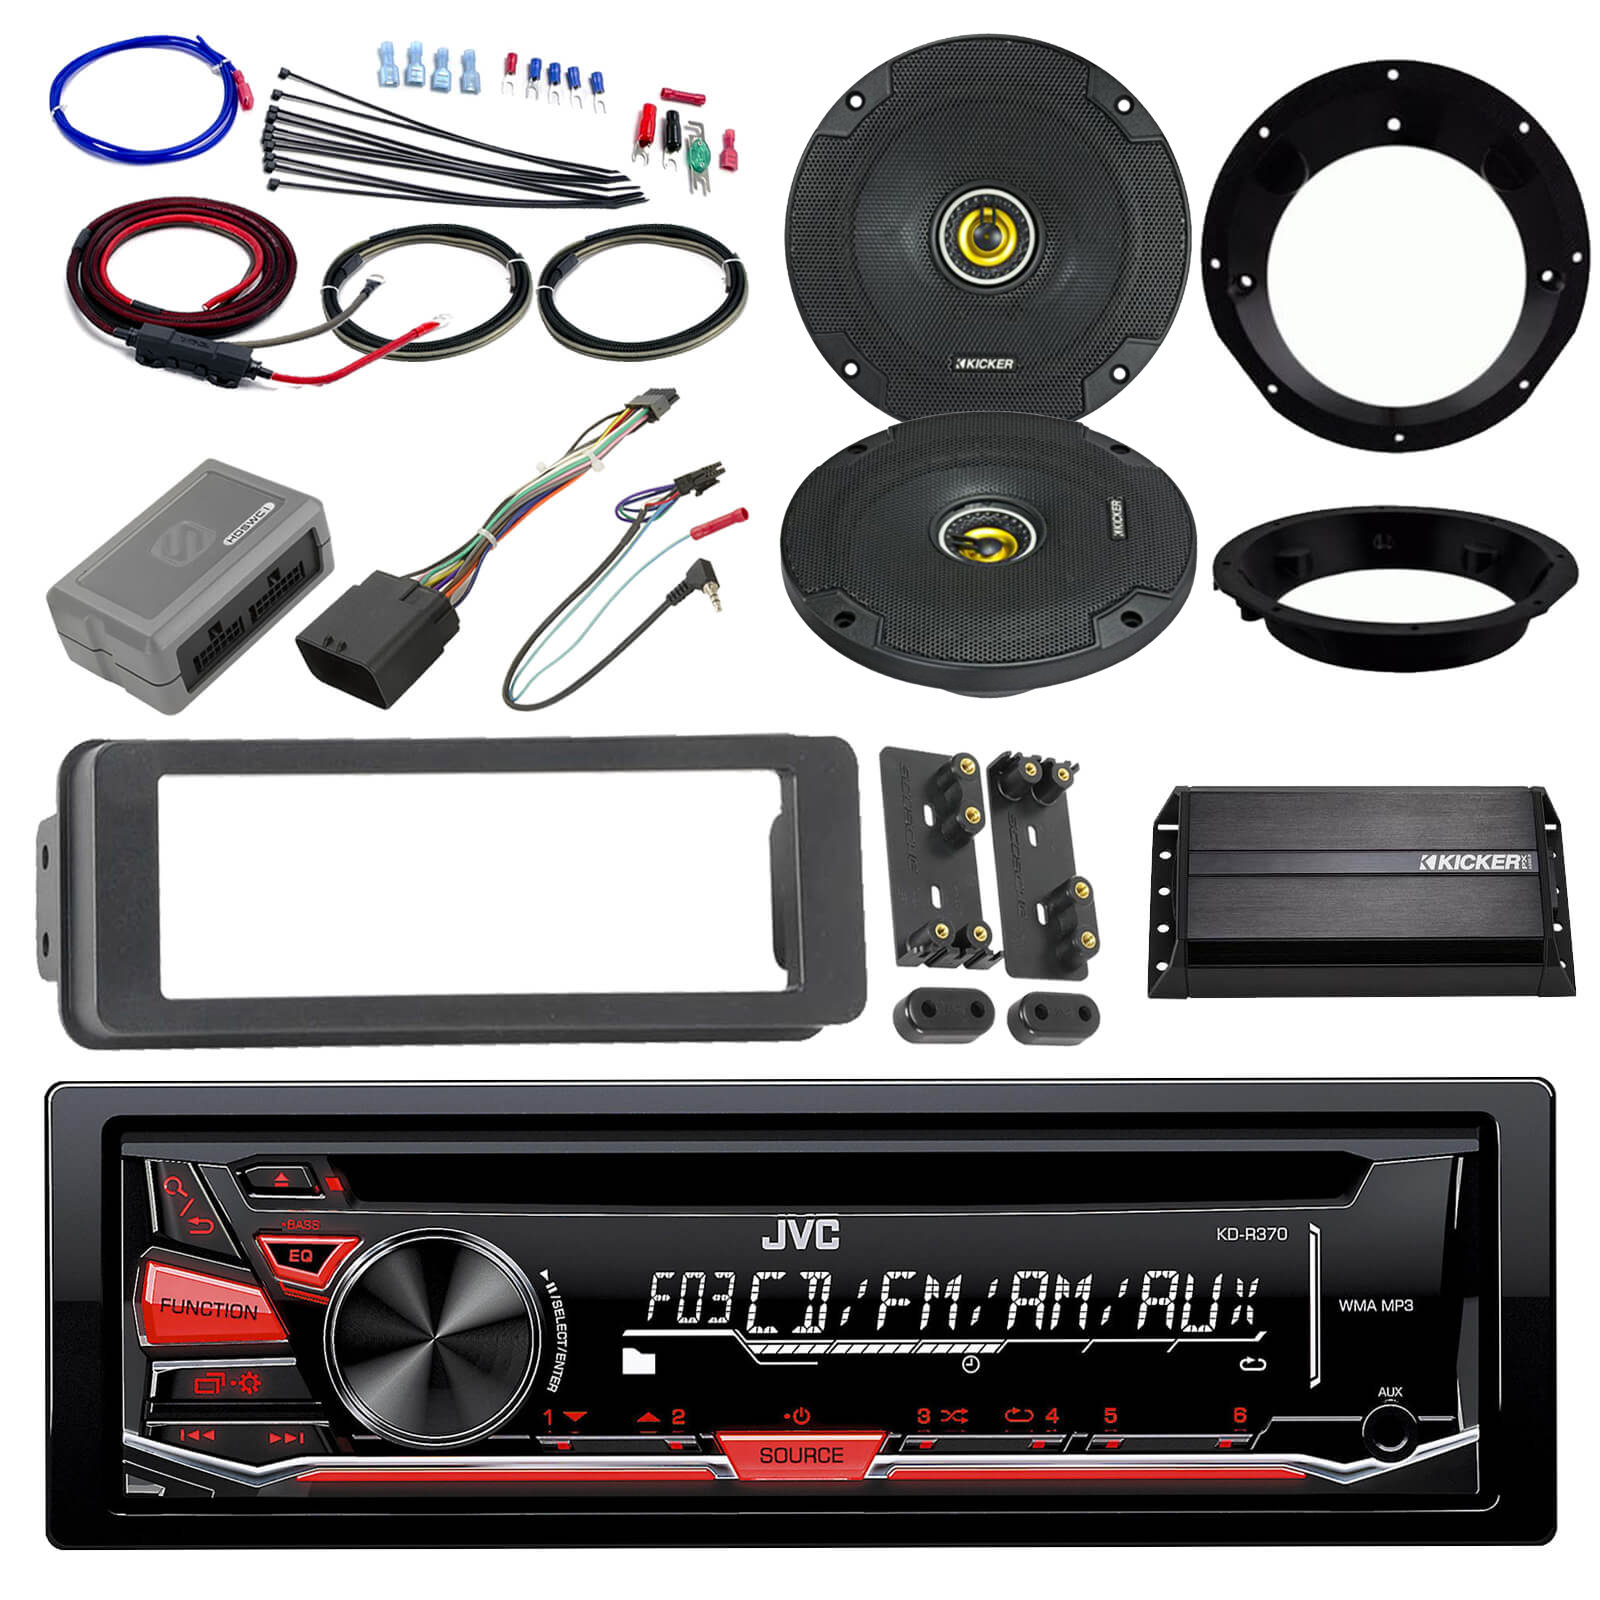 hight resolution of  please check the compatibility chart to determine if this will work for your vehicle note rear speakers must have separate wires run from the radio to